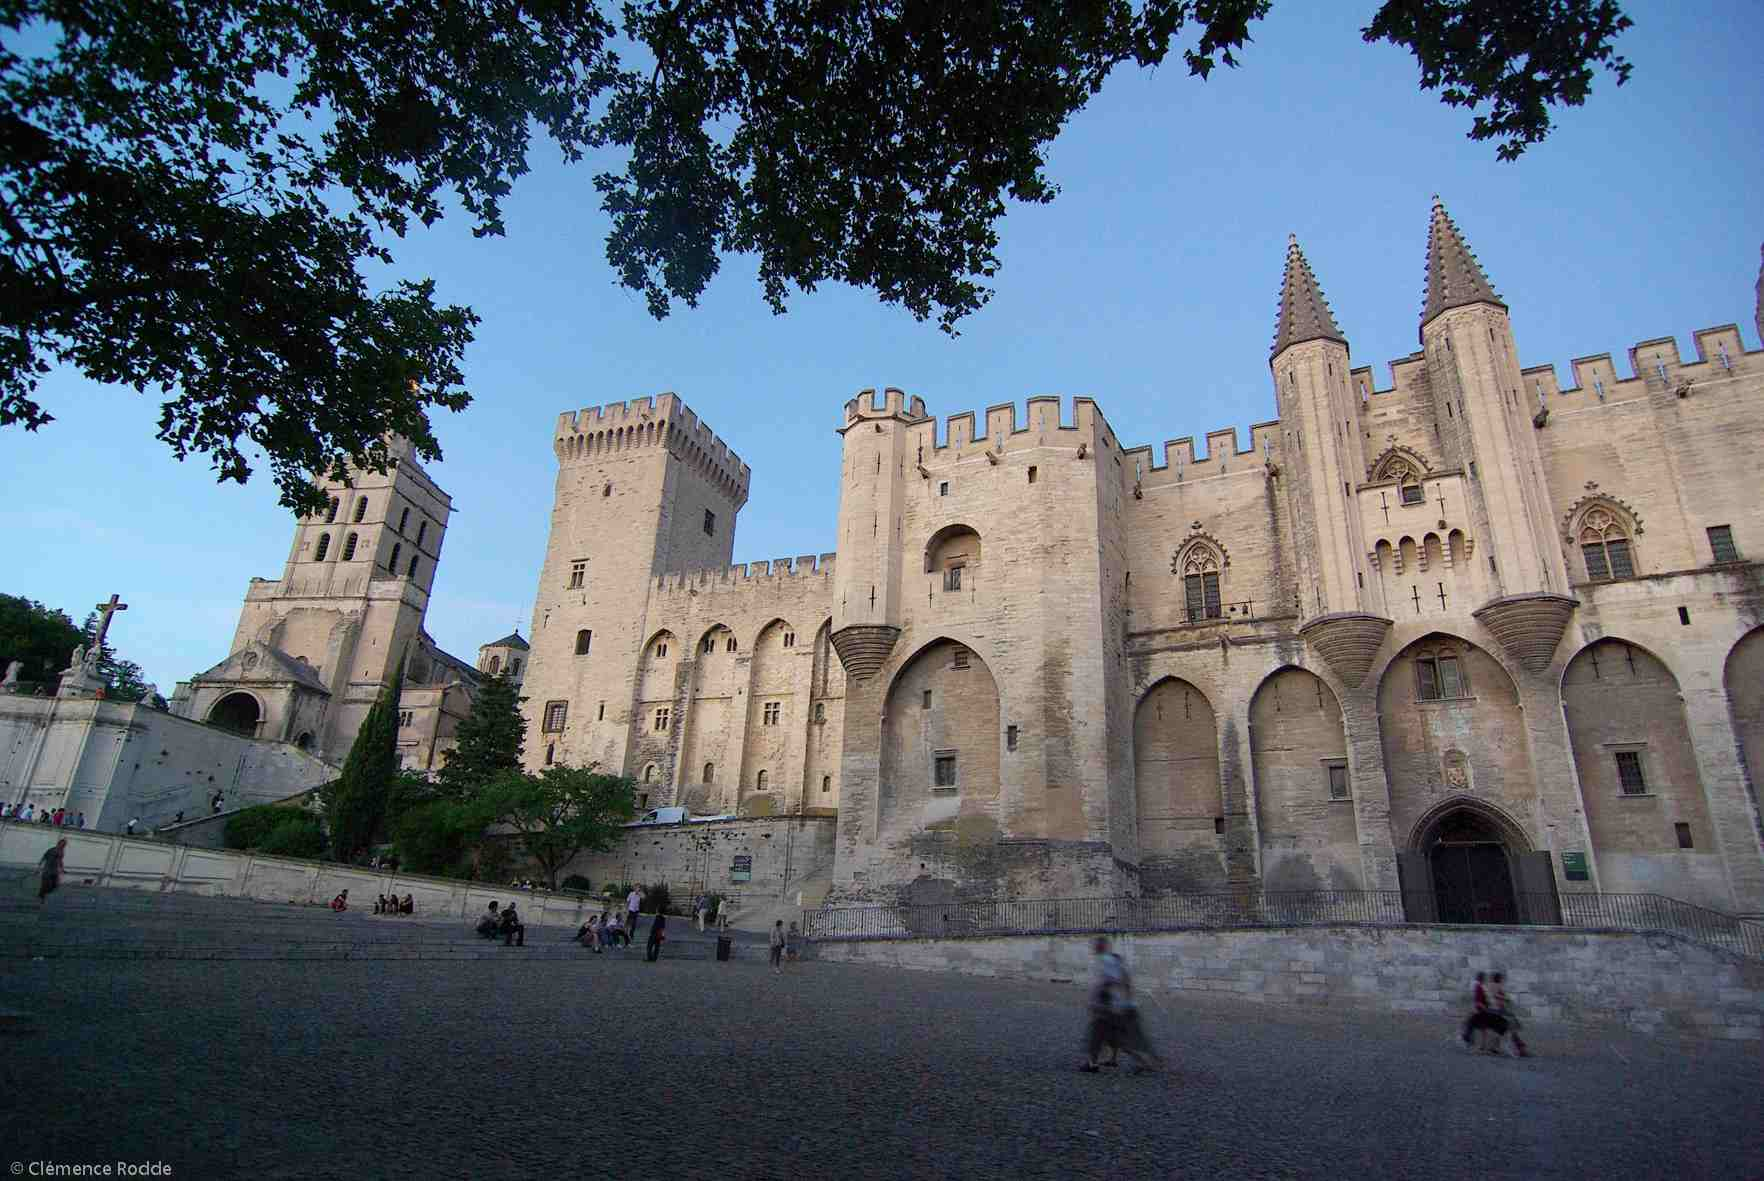 The exterior of the Pope's Palace in Avignon